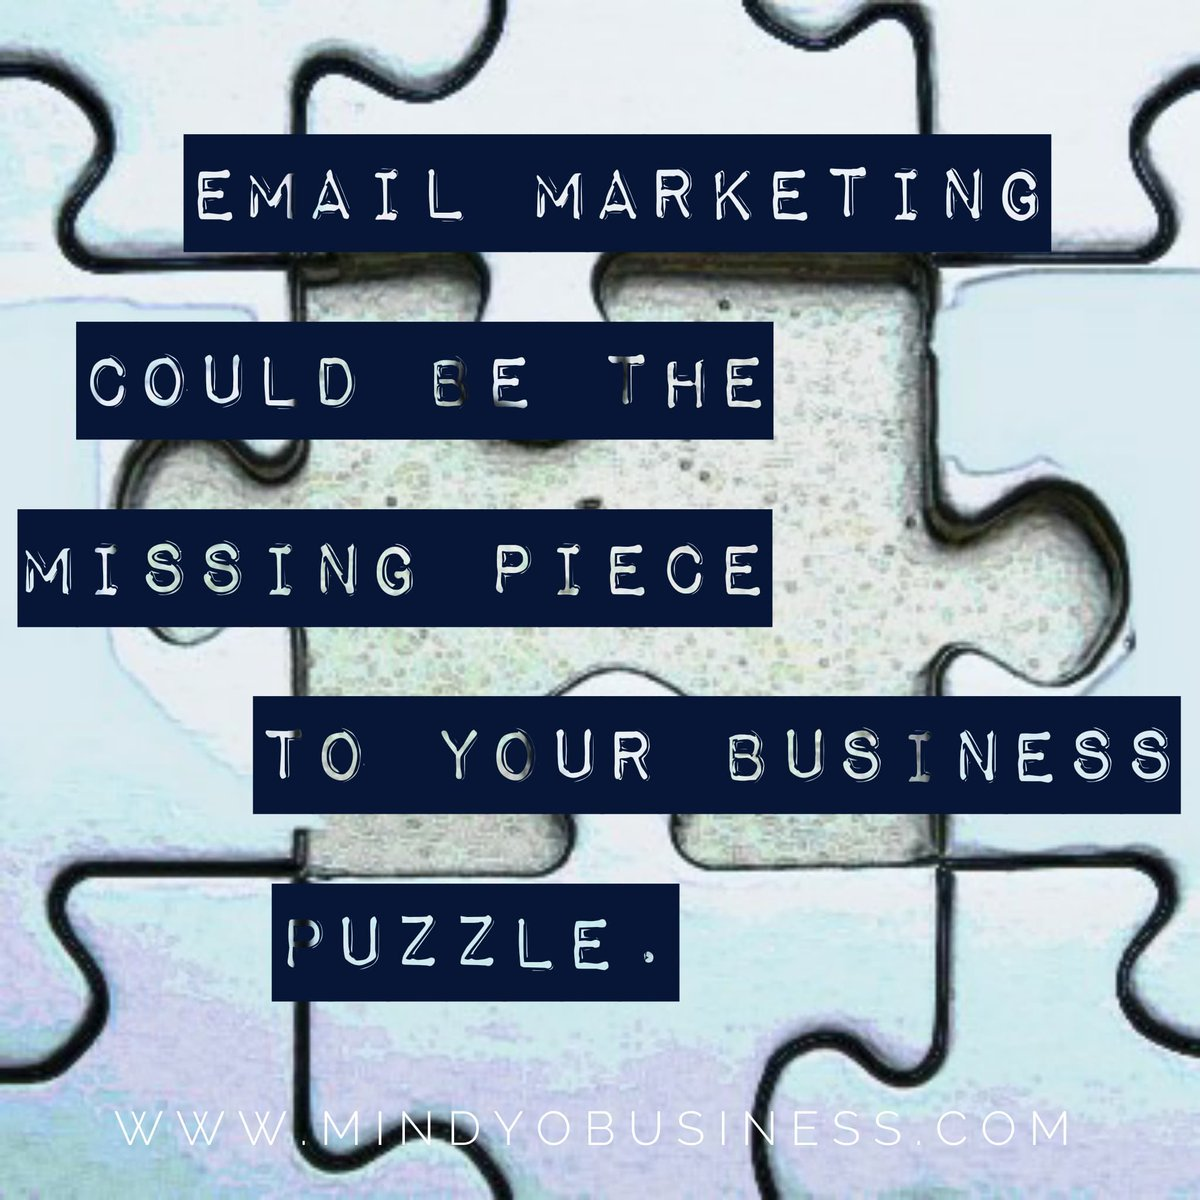 """Email marketing may seem simple, or even """"outdated"""", but we are here to tell you IT WORKS! Ready to add the missing piece? Let us do the work for you! 469.393.5912. #contentmarketing #dallastx #emailmarketing #marketingagency #marketingstrategy #mindyobusinessinc #mindyobizz_inc https://t.co/gMOOA60IxQ"""